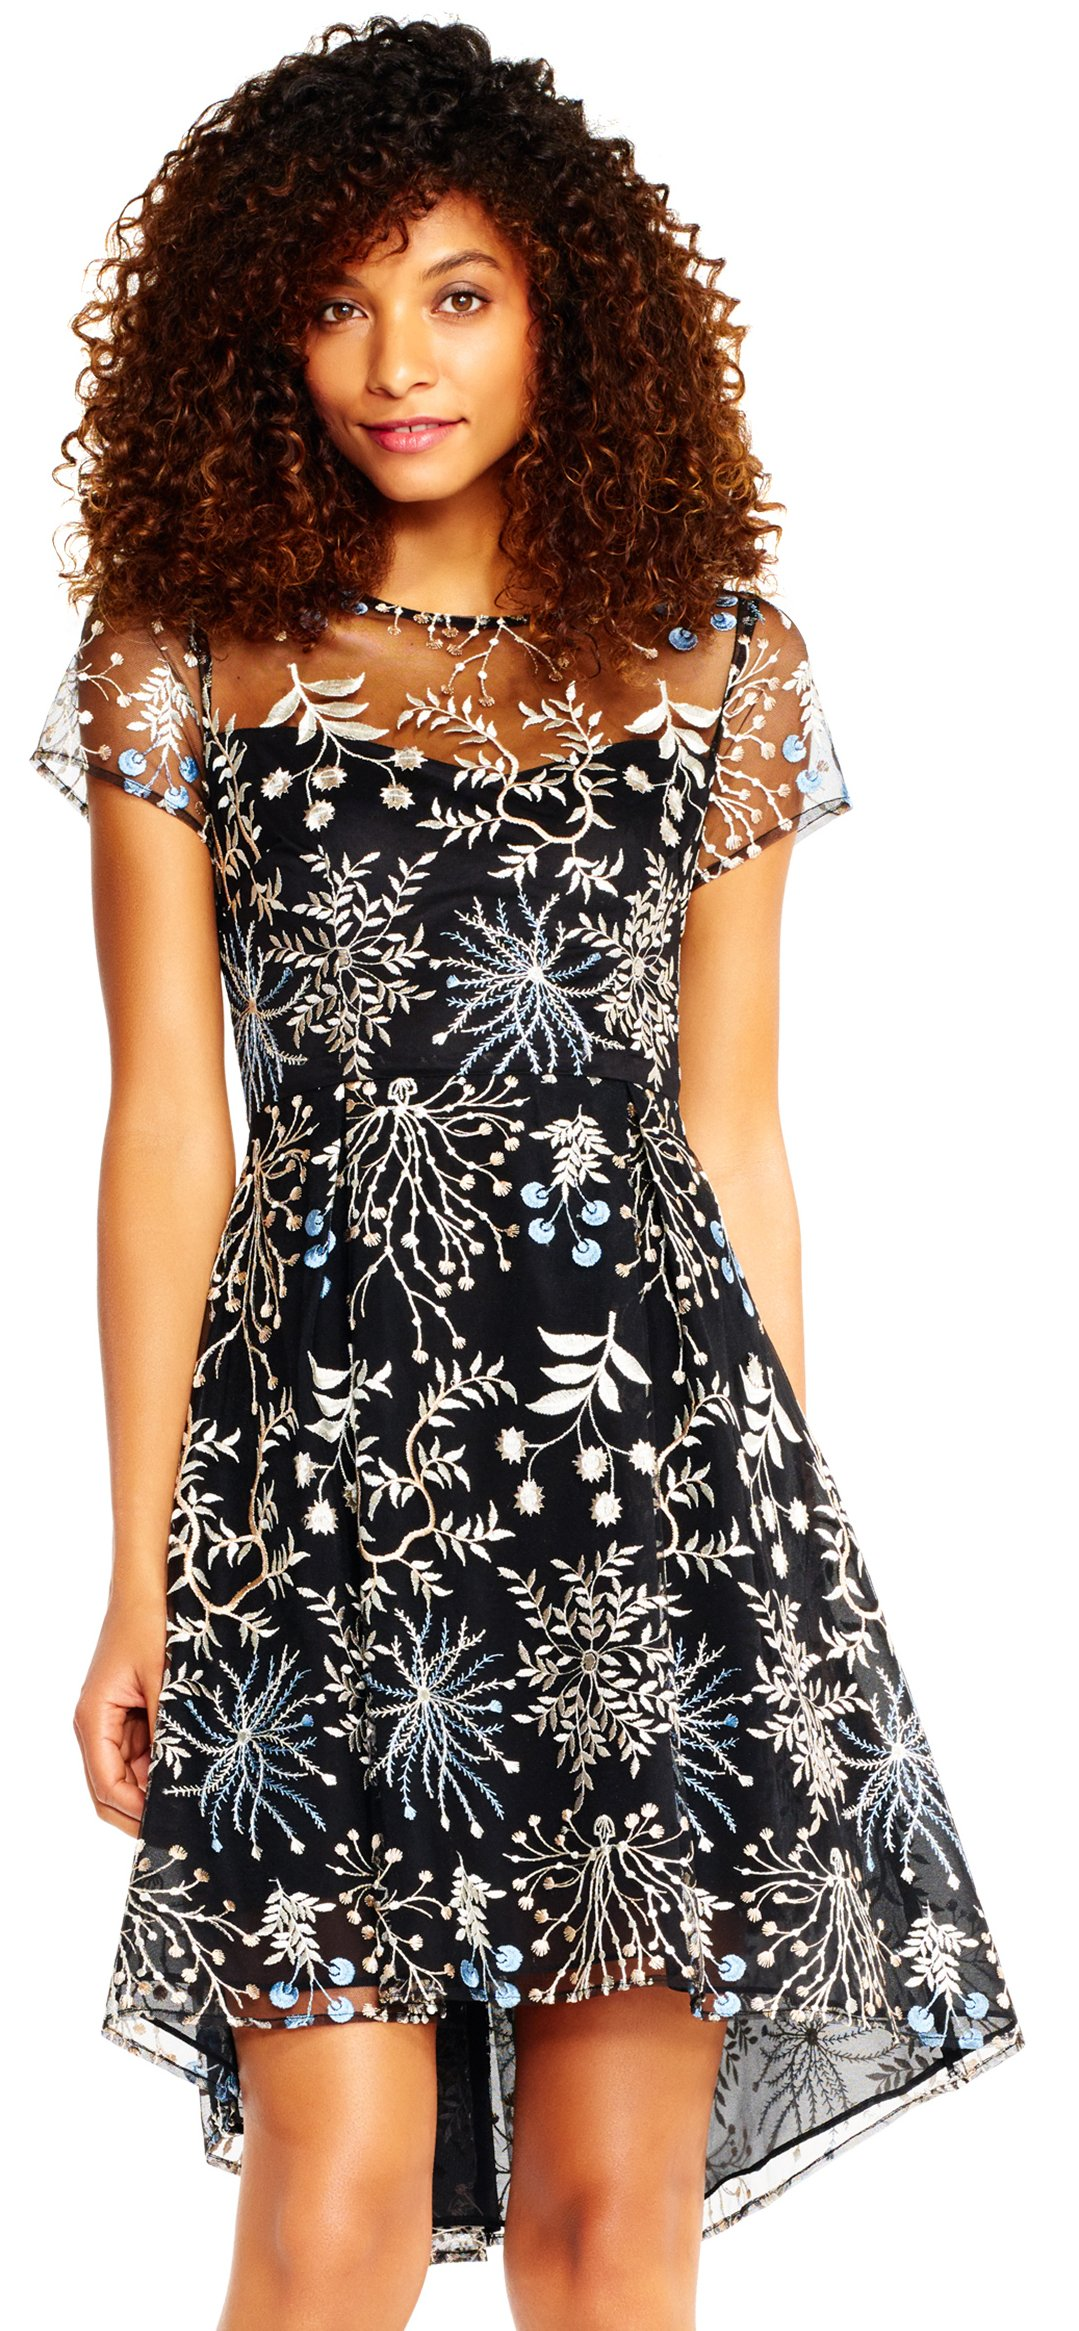 Adrianna Papell Women's Petite Etheral Fit and Flare, Blue/Multi, 8 by Adrianna Papell (Image #1)